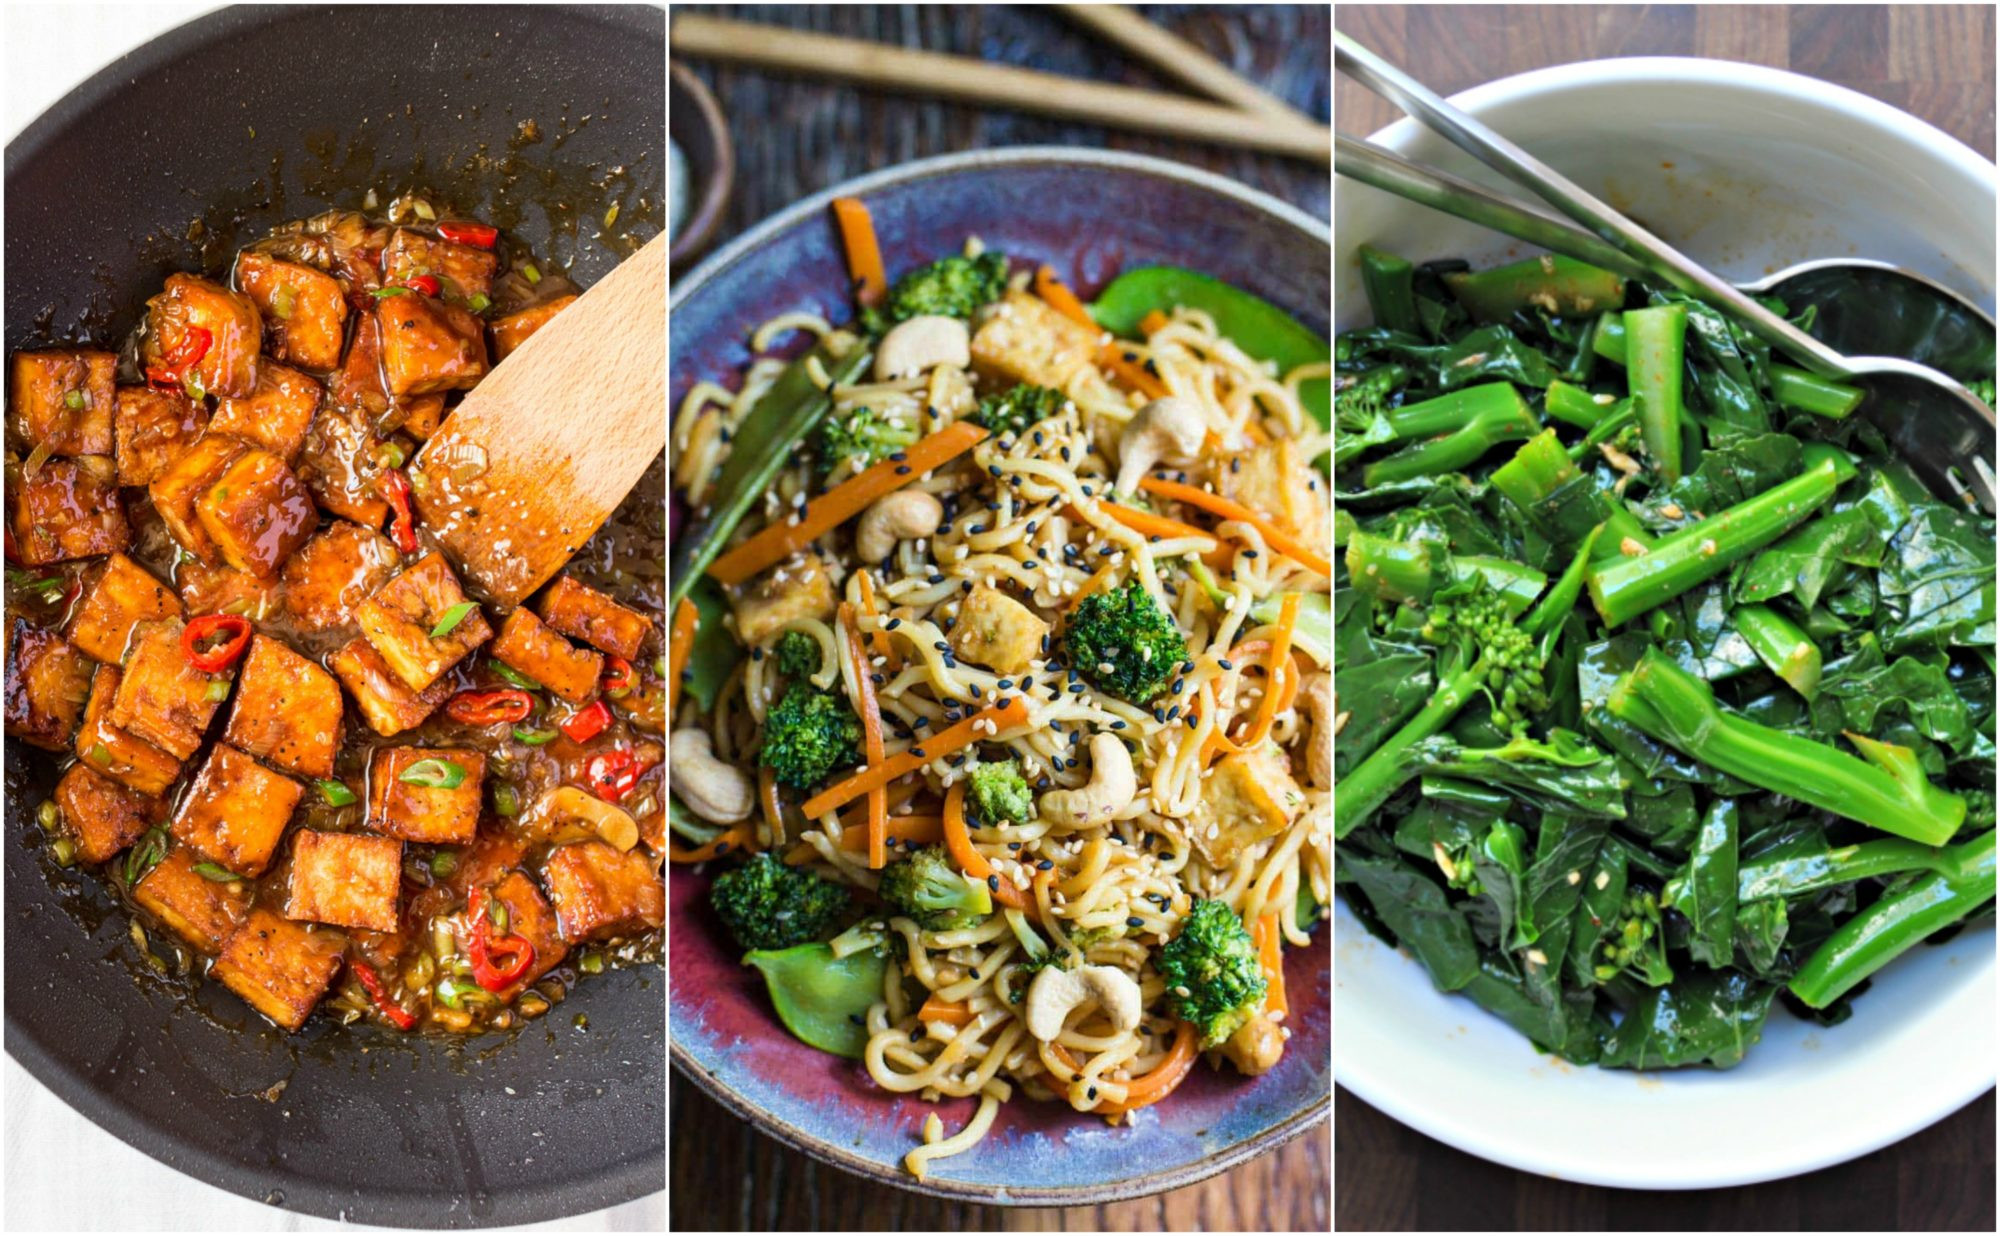 Vegan Chinese Recipes  21 Vegan Chinese Recipes Vegan Food Lover